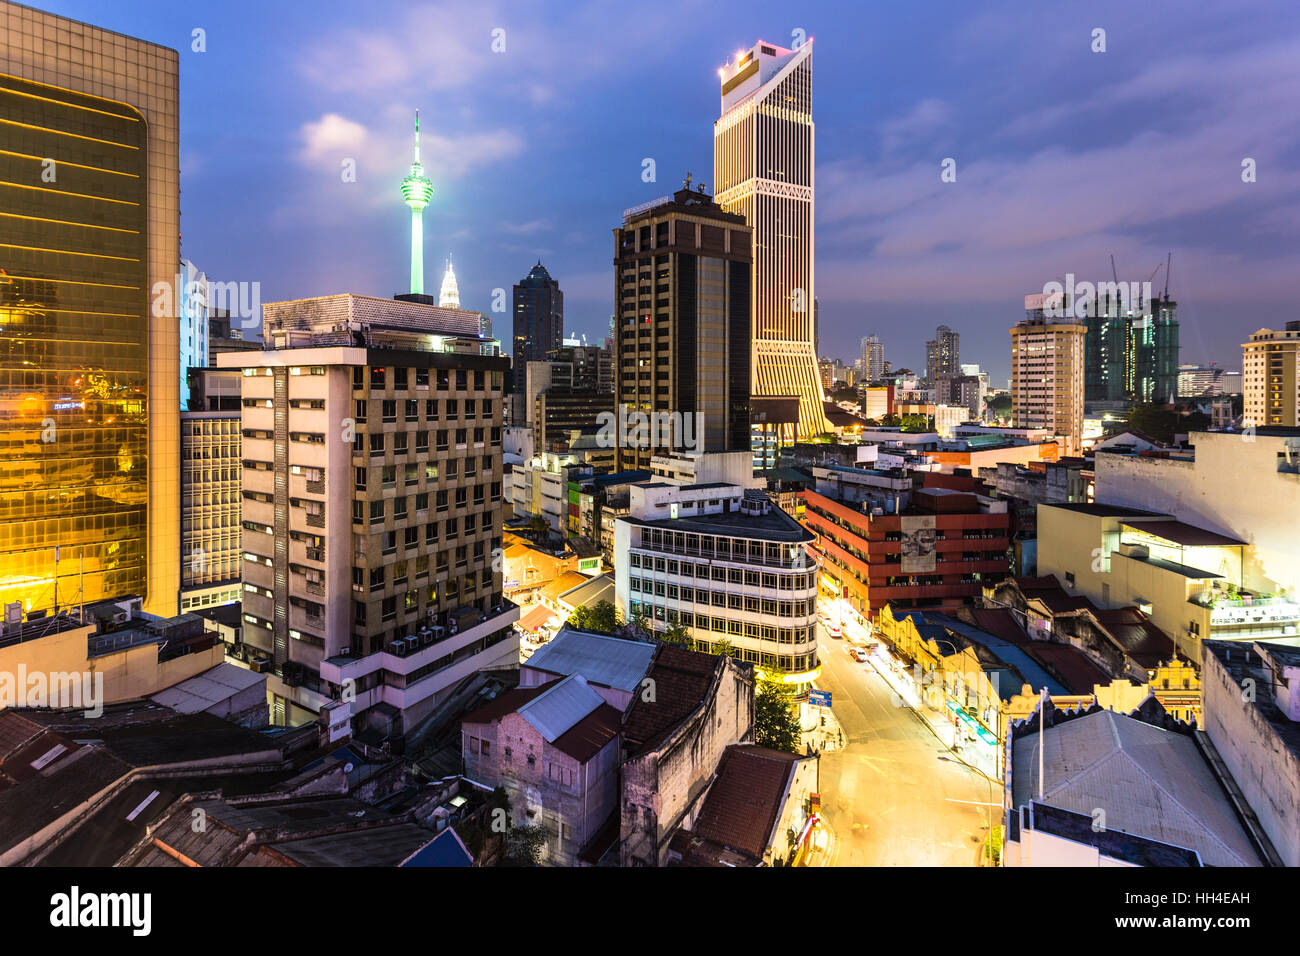 An aerial view of the business district of Kuala Lumpur, Malaysia capital city, at night. The city is an important - Stock Image